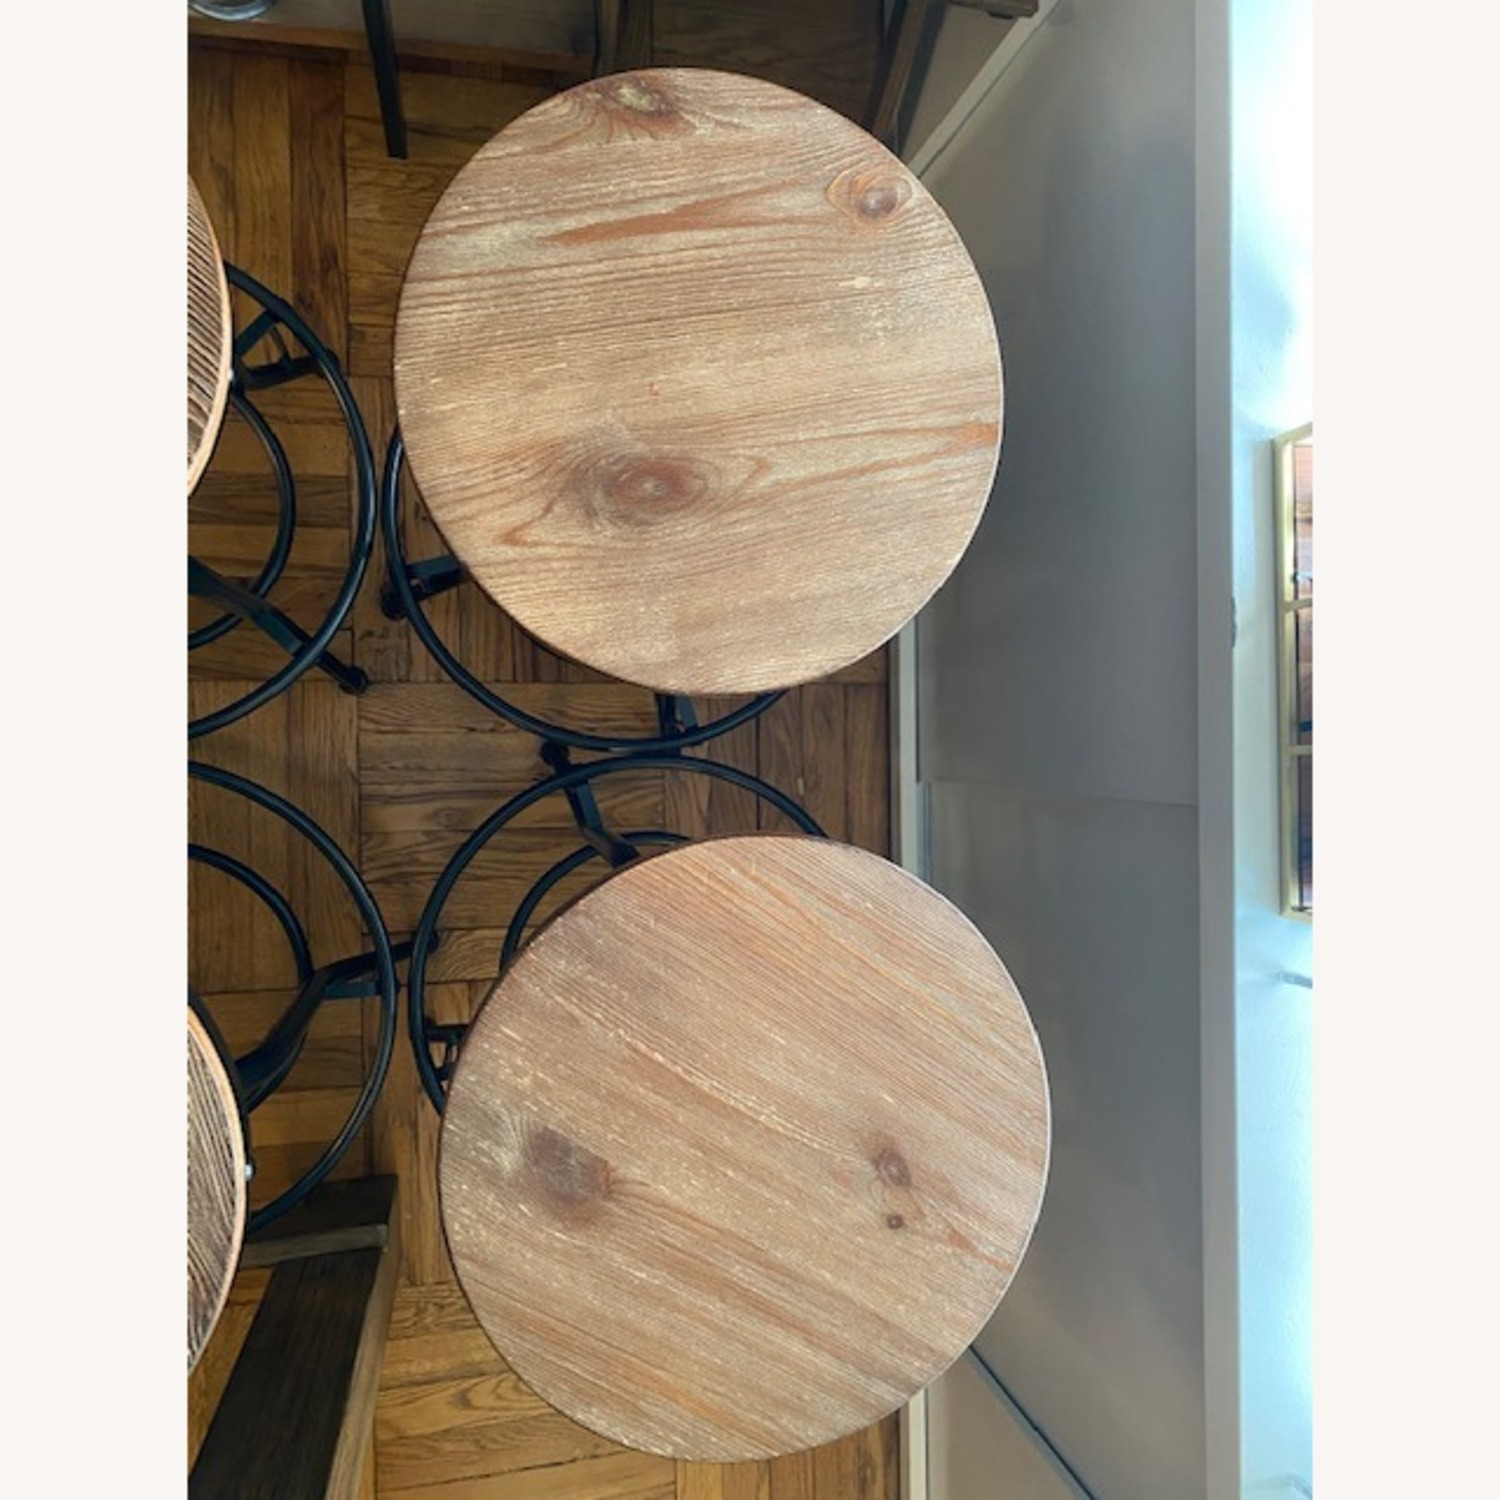 Ashley Furniture Dining Room Bar Table and Bar Stools (4) - image-6